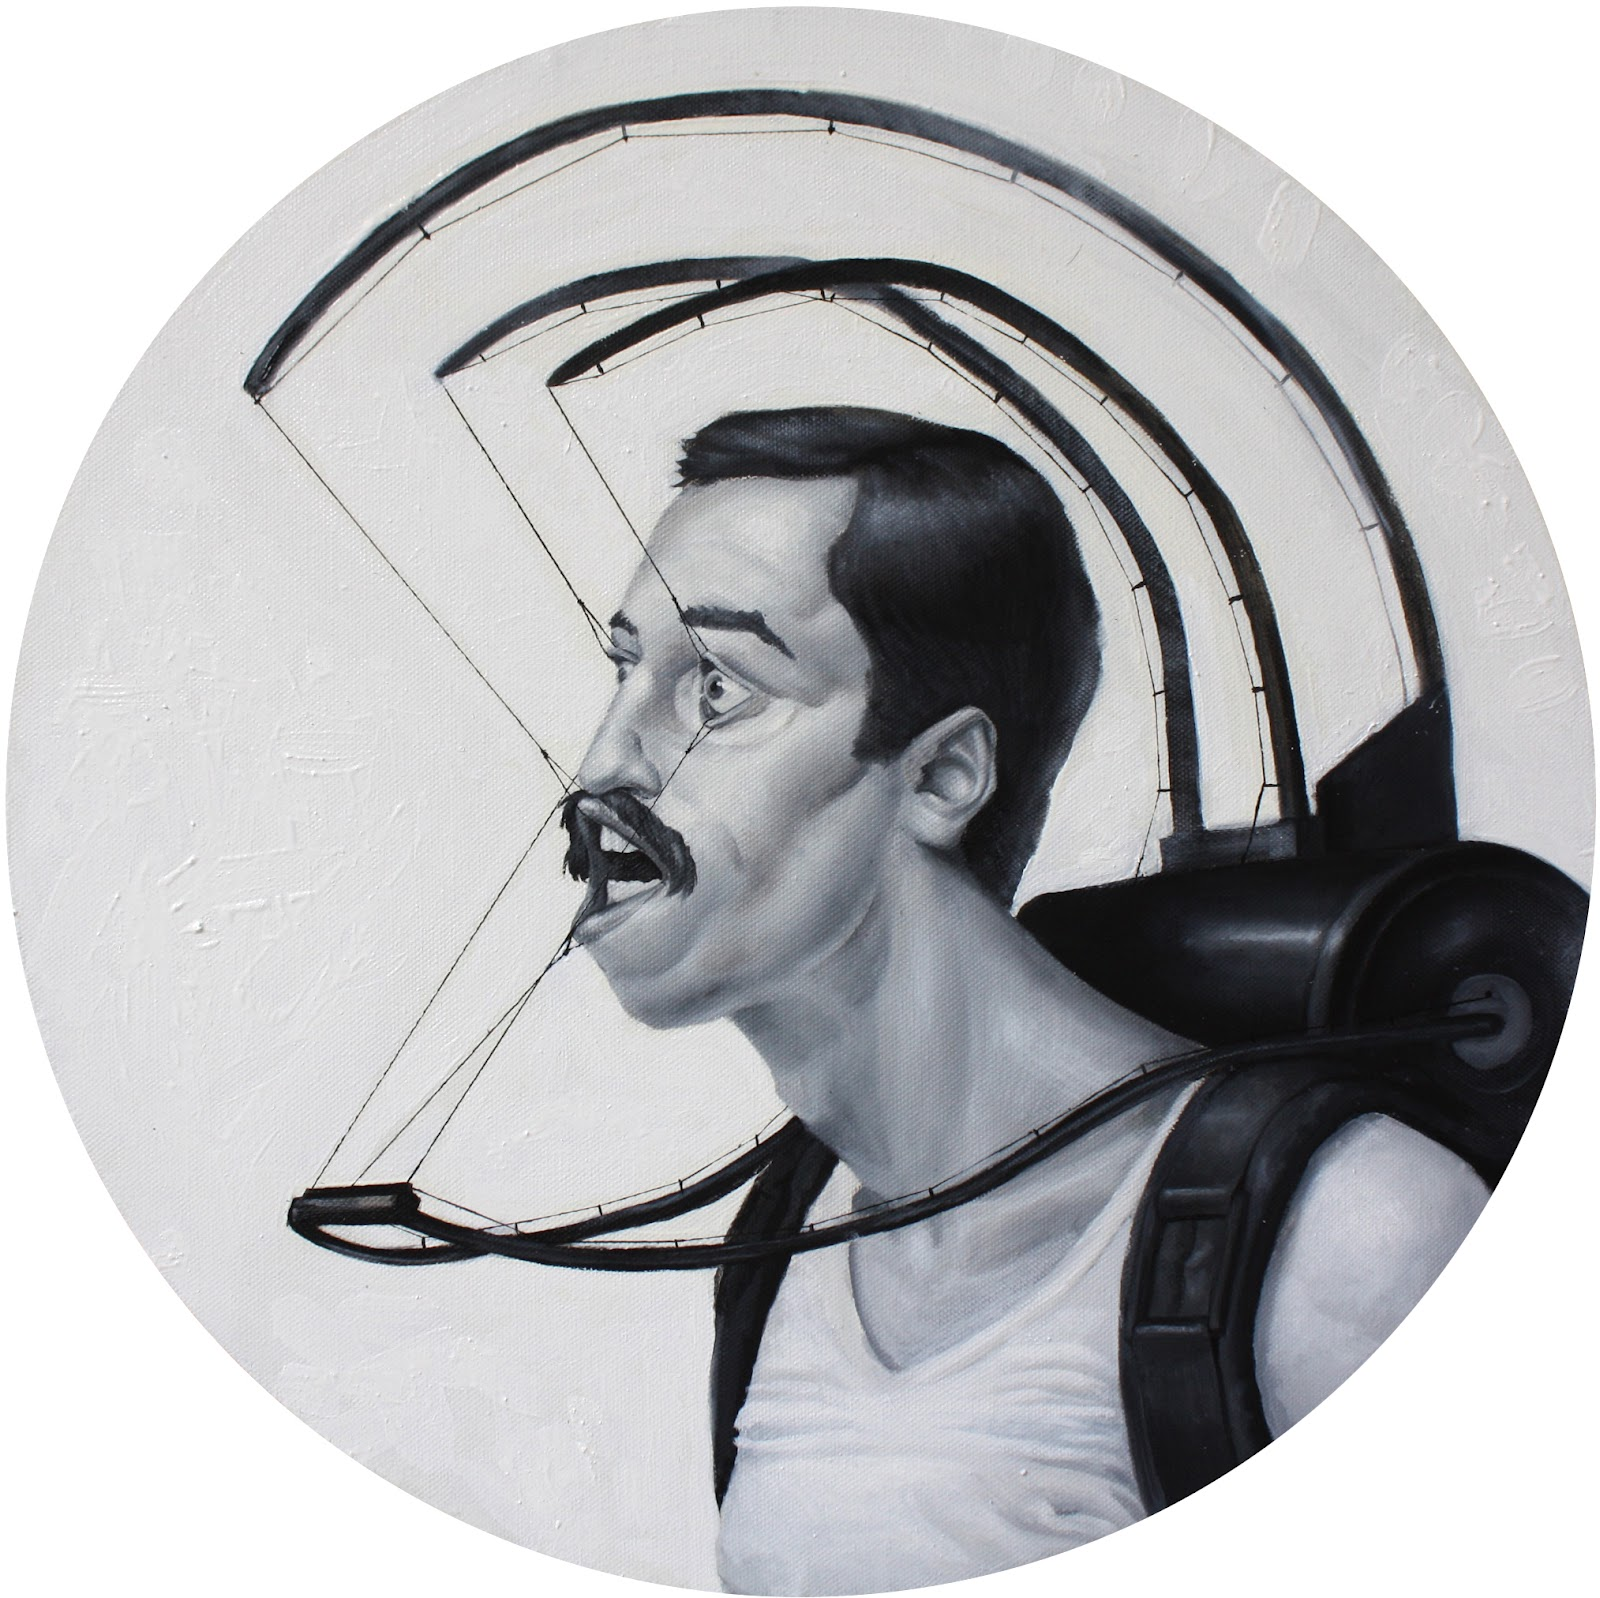 C. Lianos - Lacking choice, oil on canvas (50 cm diameter)